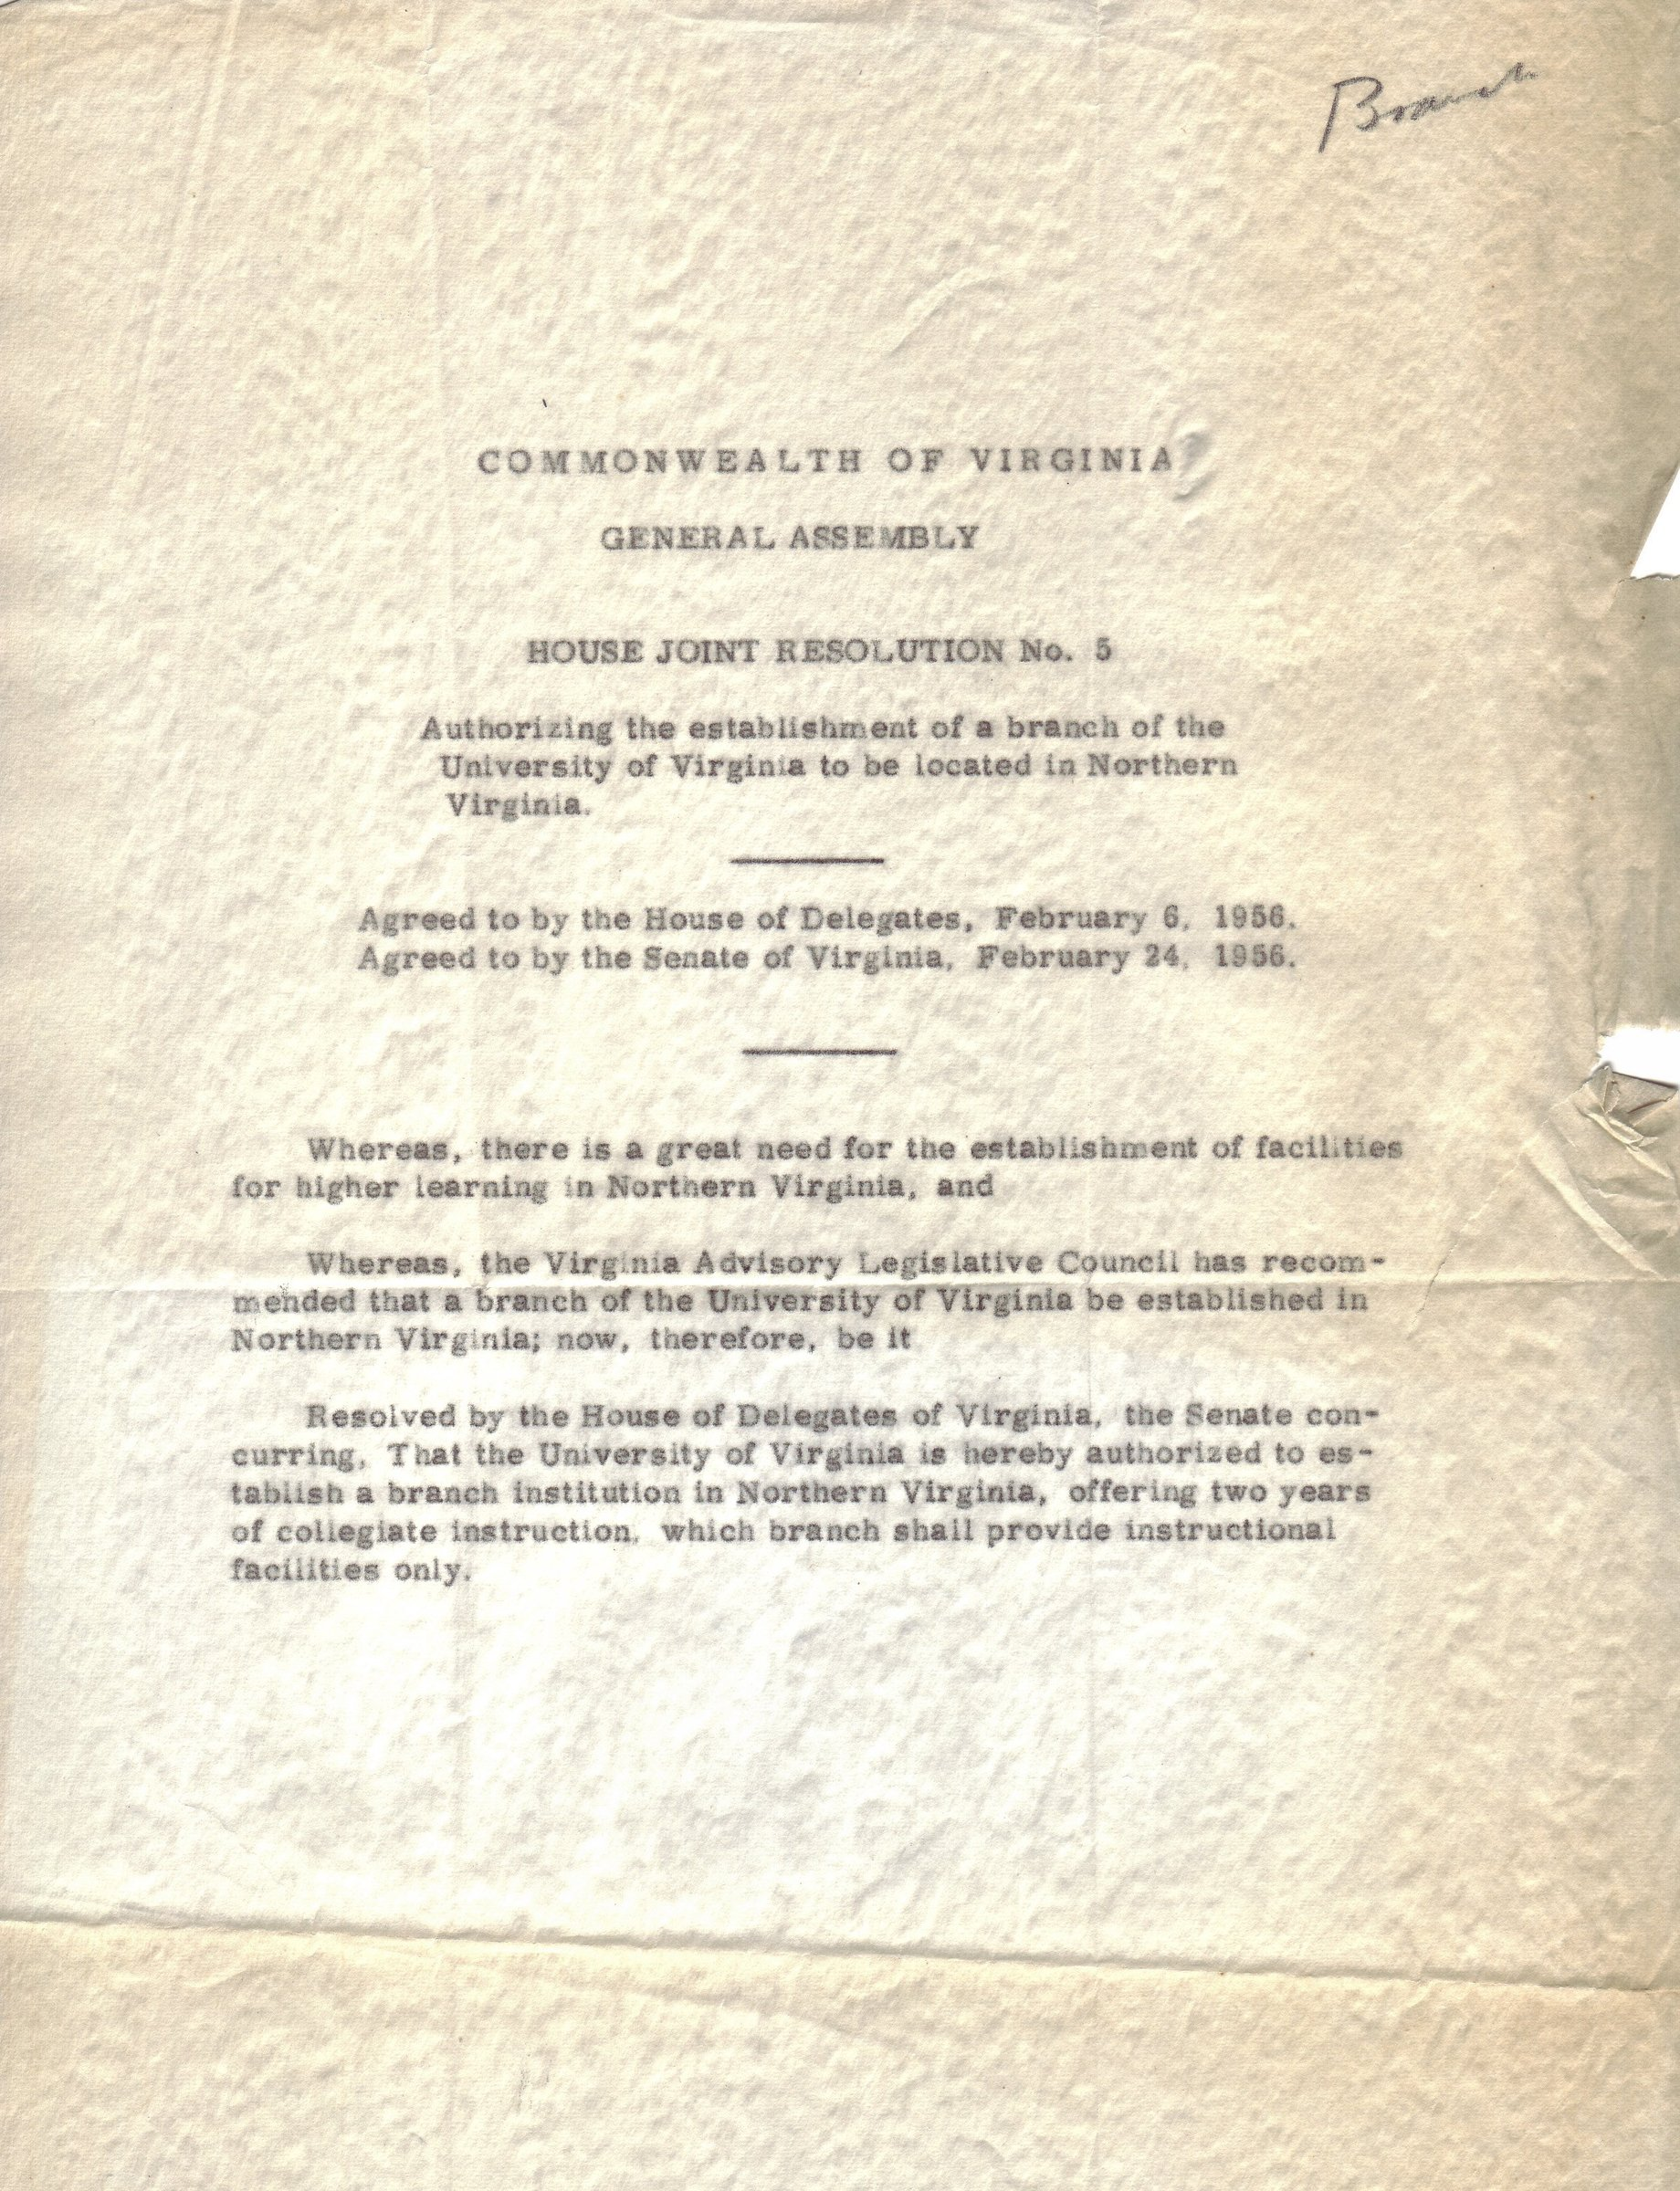 Commonwealth of Virginia: House Joint Resolution #5, February 24, 1956.